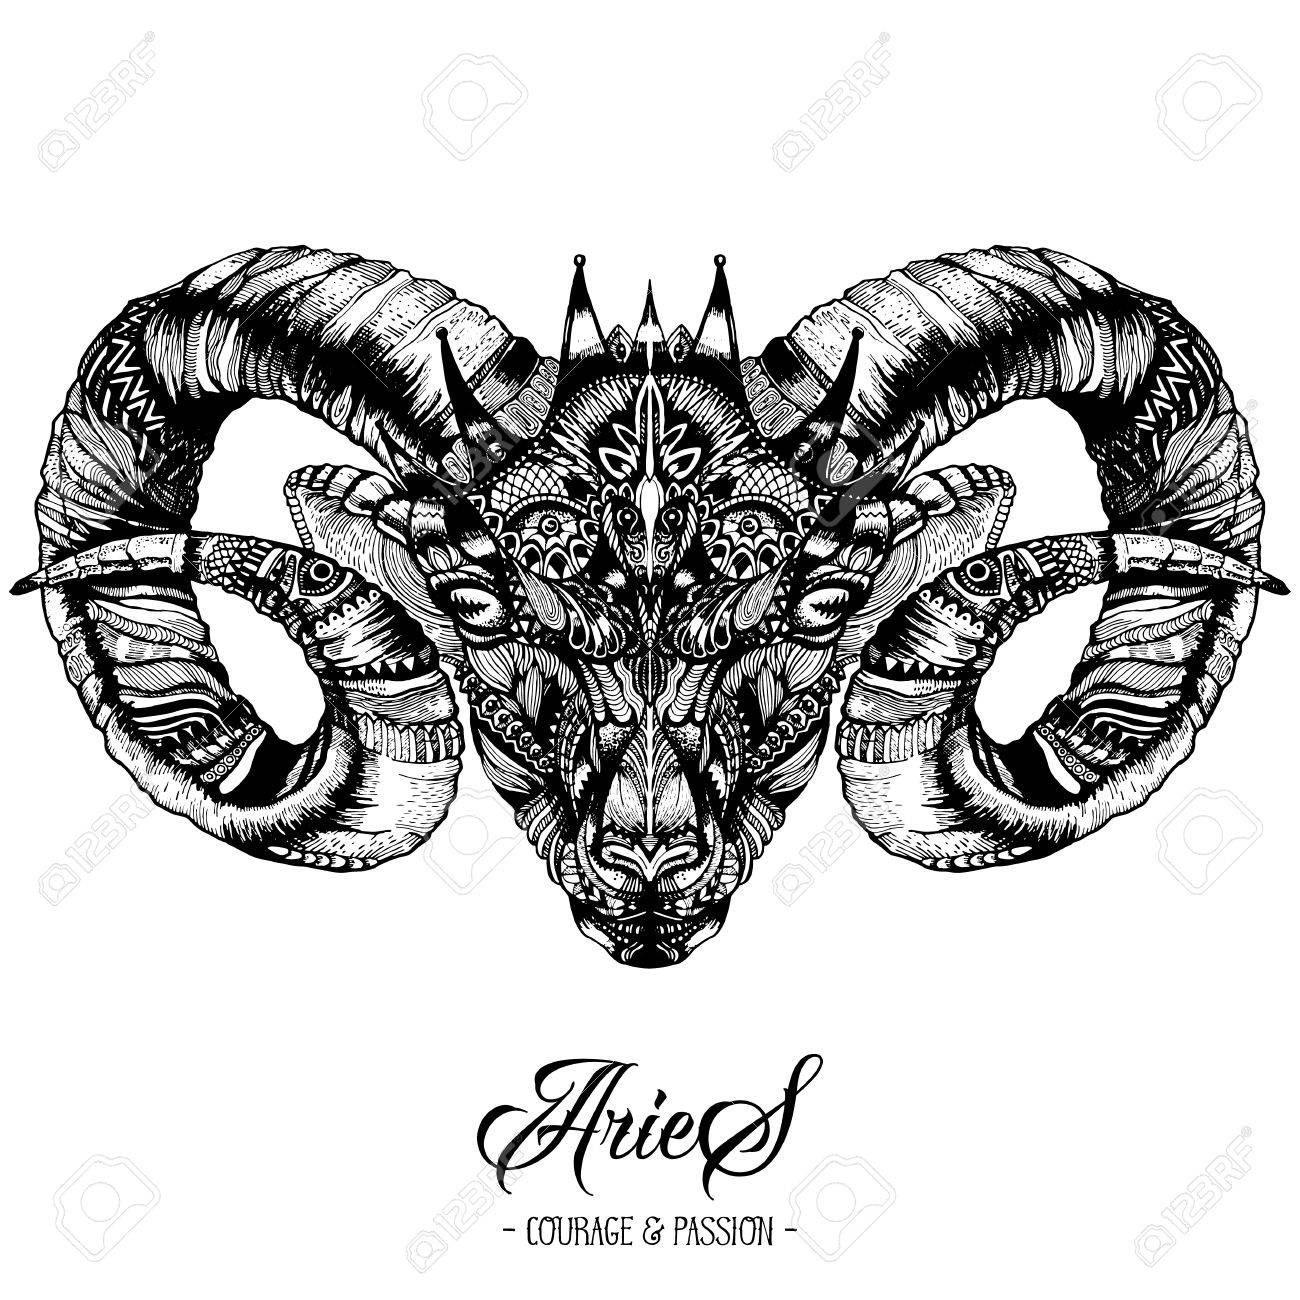 Zodiacal Aries Ink Drawing Isolated on White. Ram Head in Zentangle Style. Zodiac Sigh made of Ethnic Doodle Pattern. Trendy Tattoo Design. Hipster T-Shirt Print. Stock Vector - 74140827